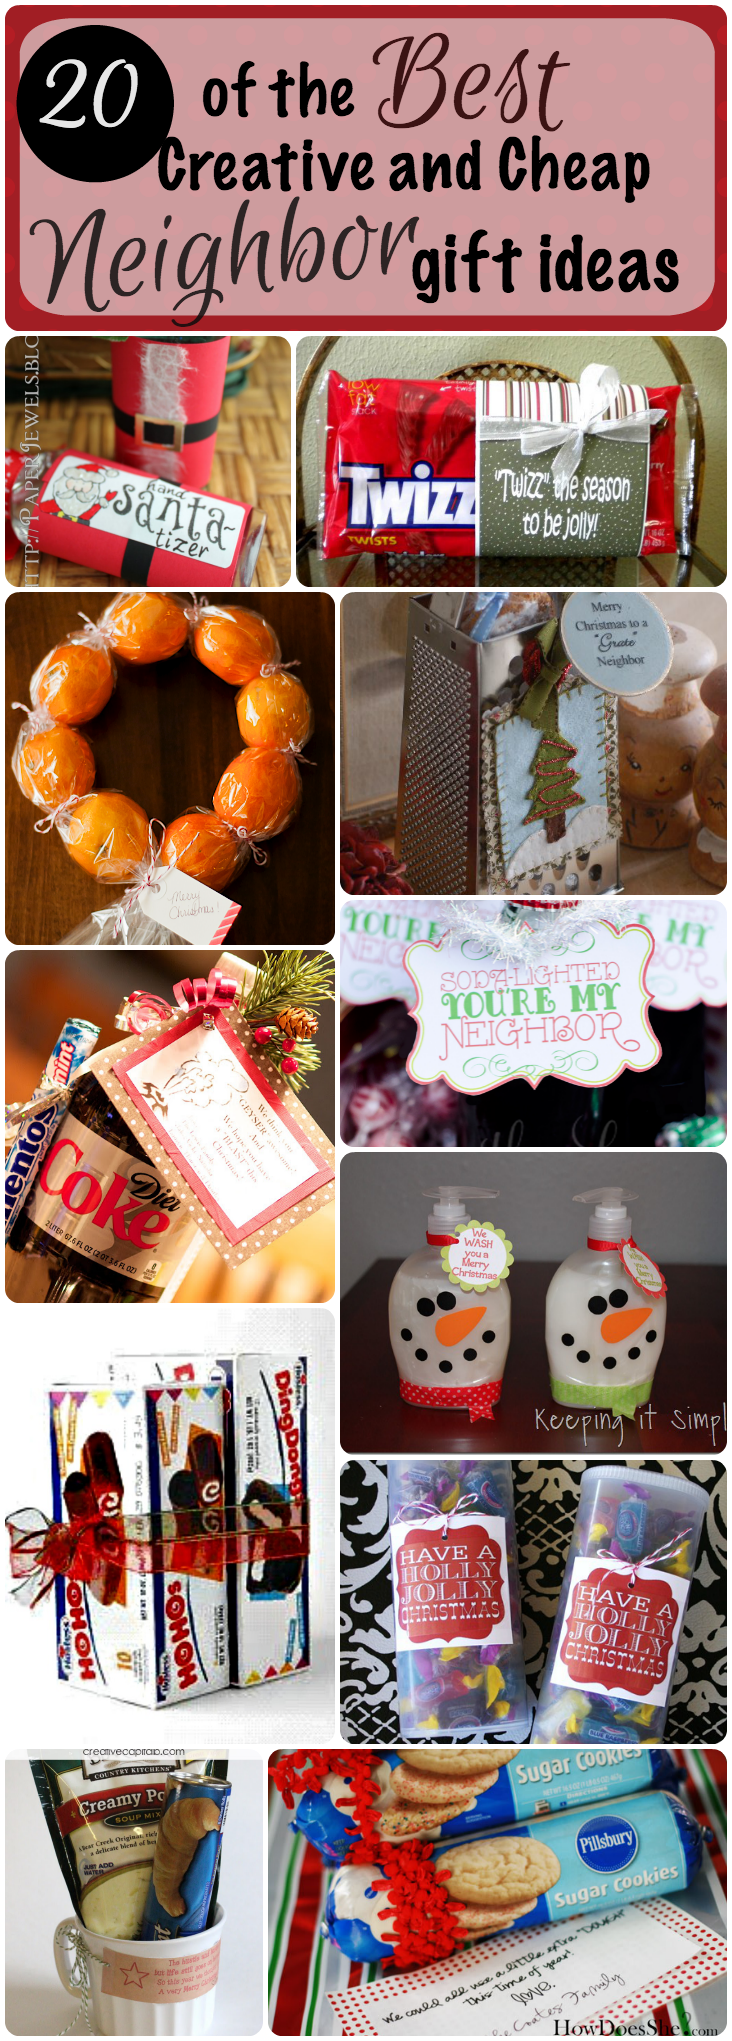 20 best creative and cheap neighbor gifts for christmas